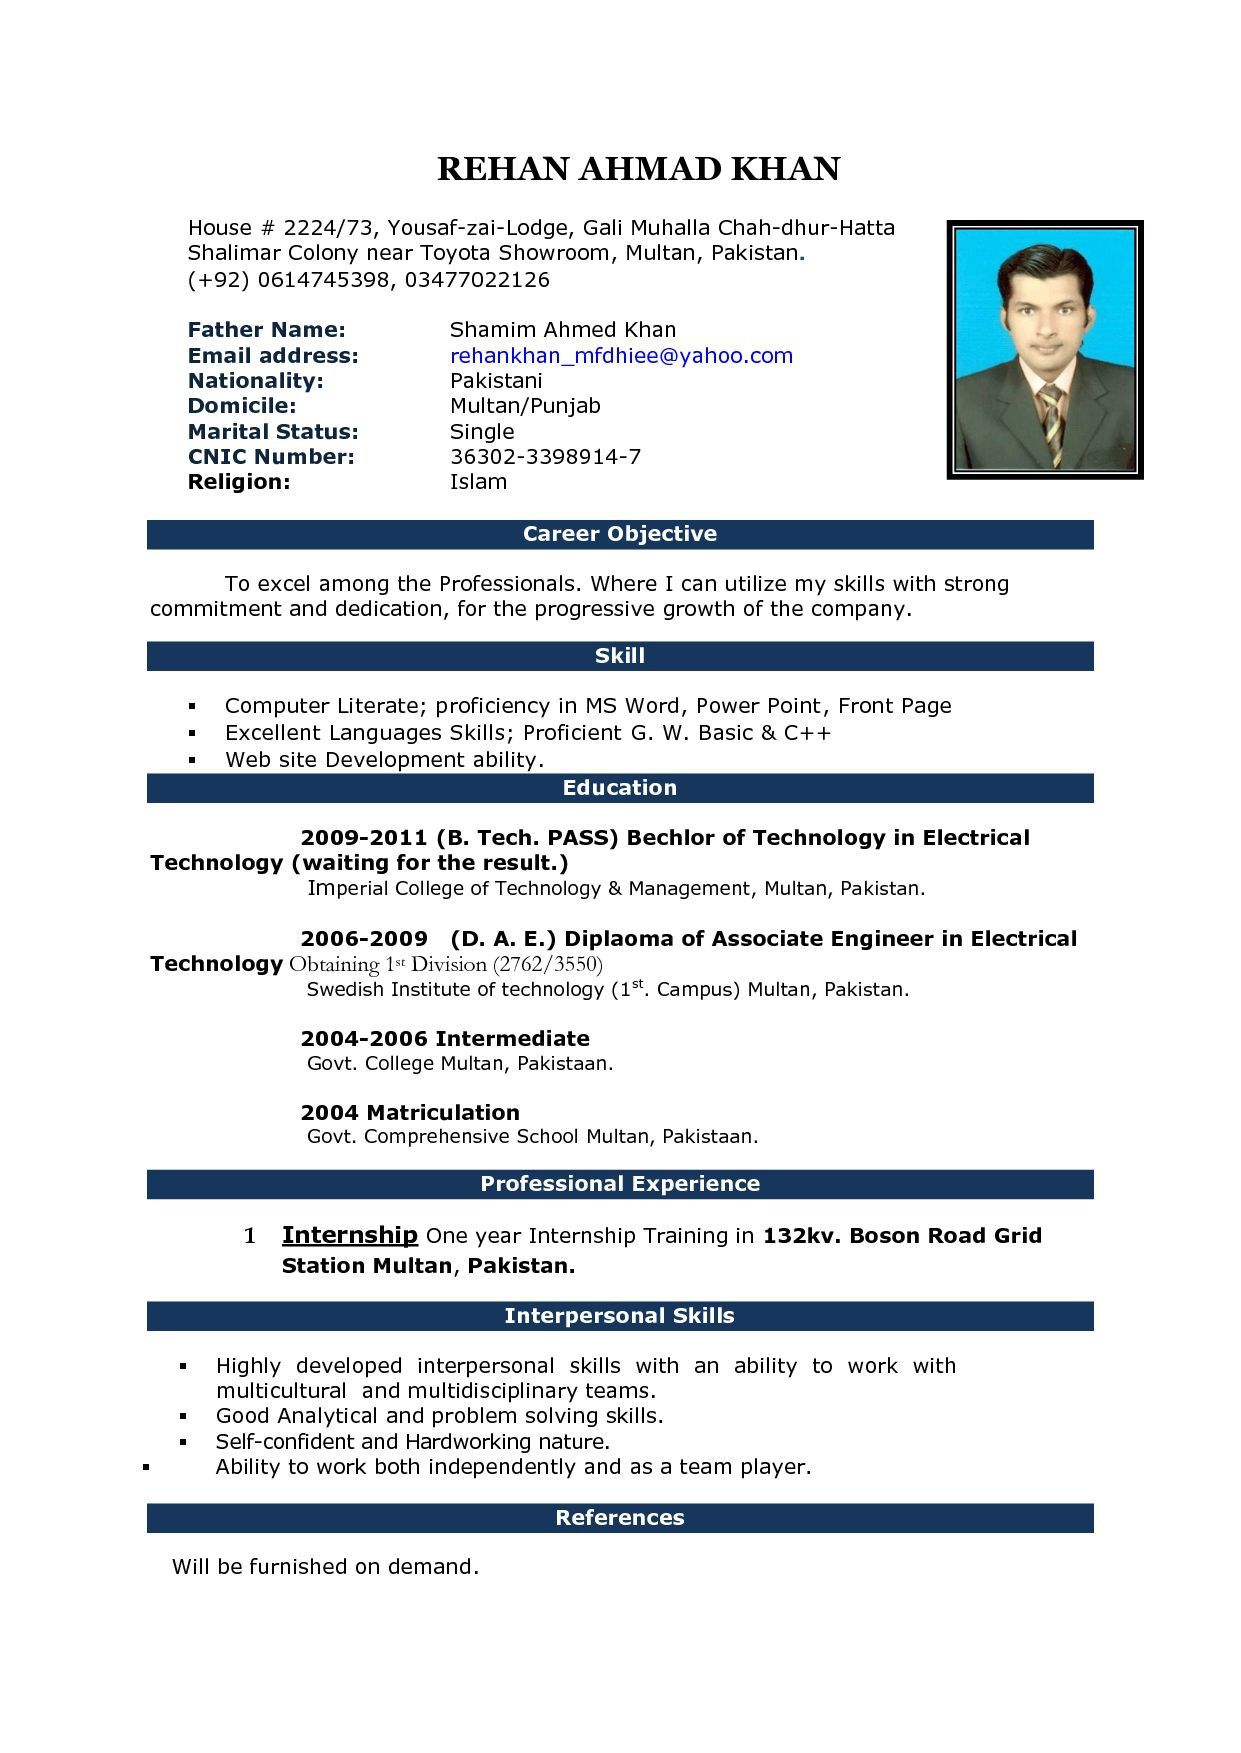 004 Unforgettable M Word 2010 Resume Template Image  Templates Office Free Microsoft DownloadFull